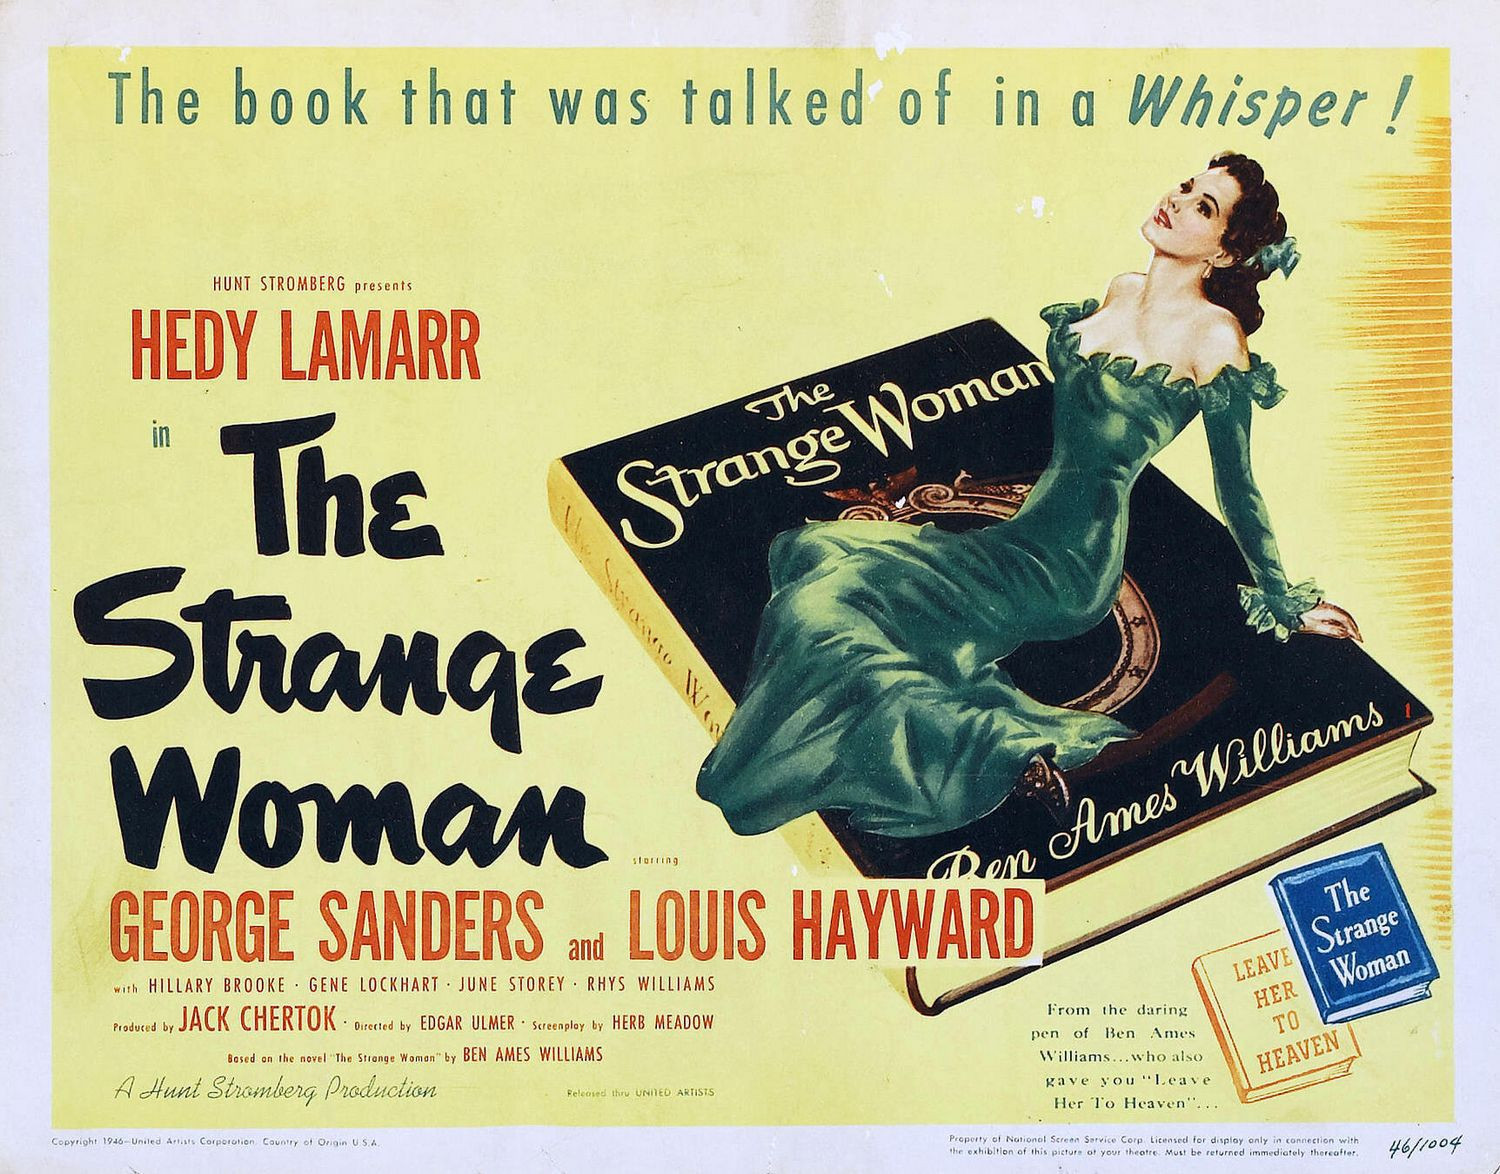 Strange Woman -  the book that was talked of in a qhisper - Hedy Lamarr - George Sanders - Louis Hayward - Hillary Brooke - Gene Lockhart - June Storey - Rhys Williams - old cult film poster